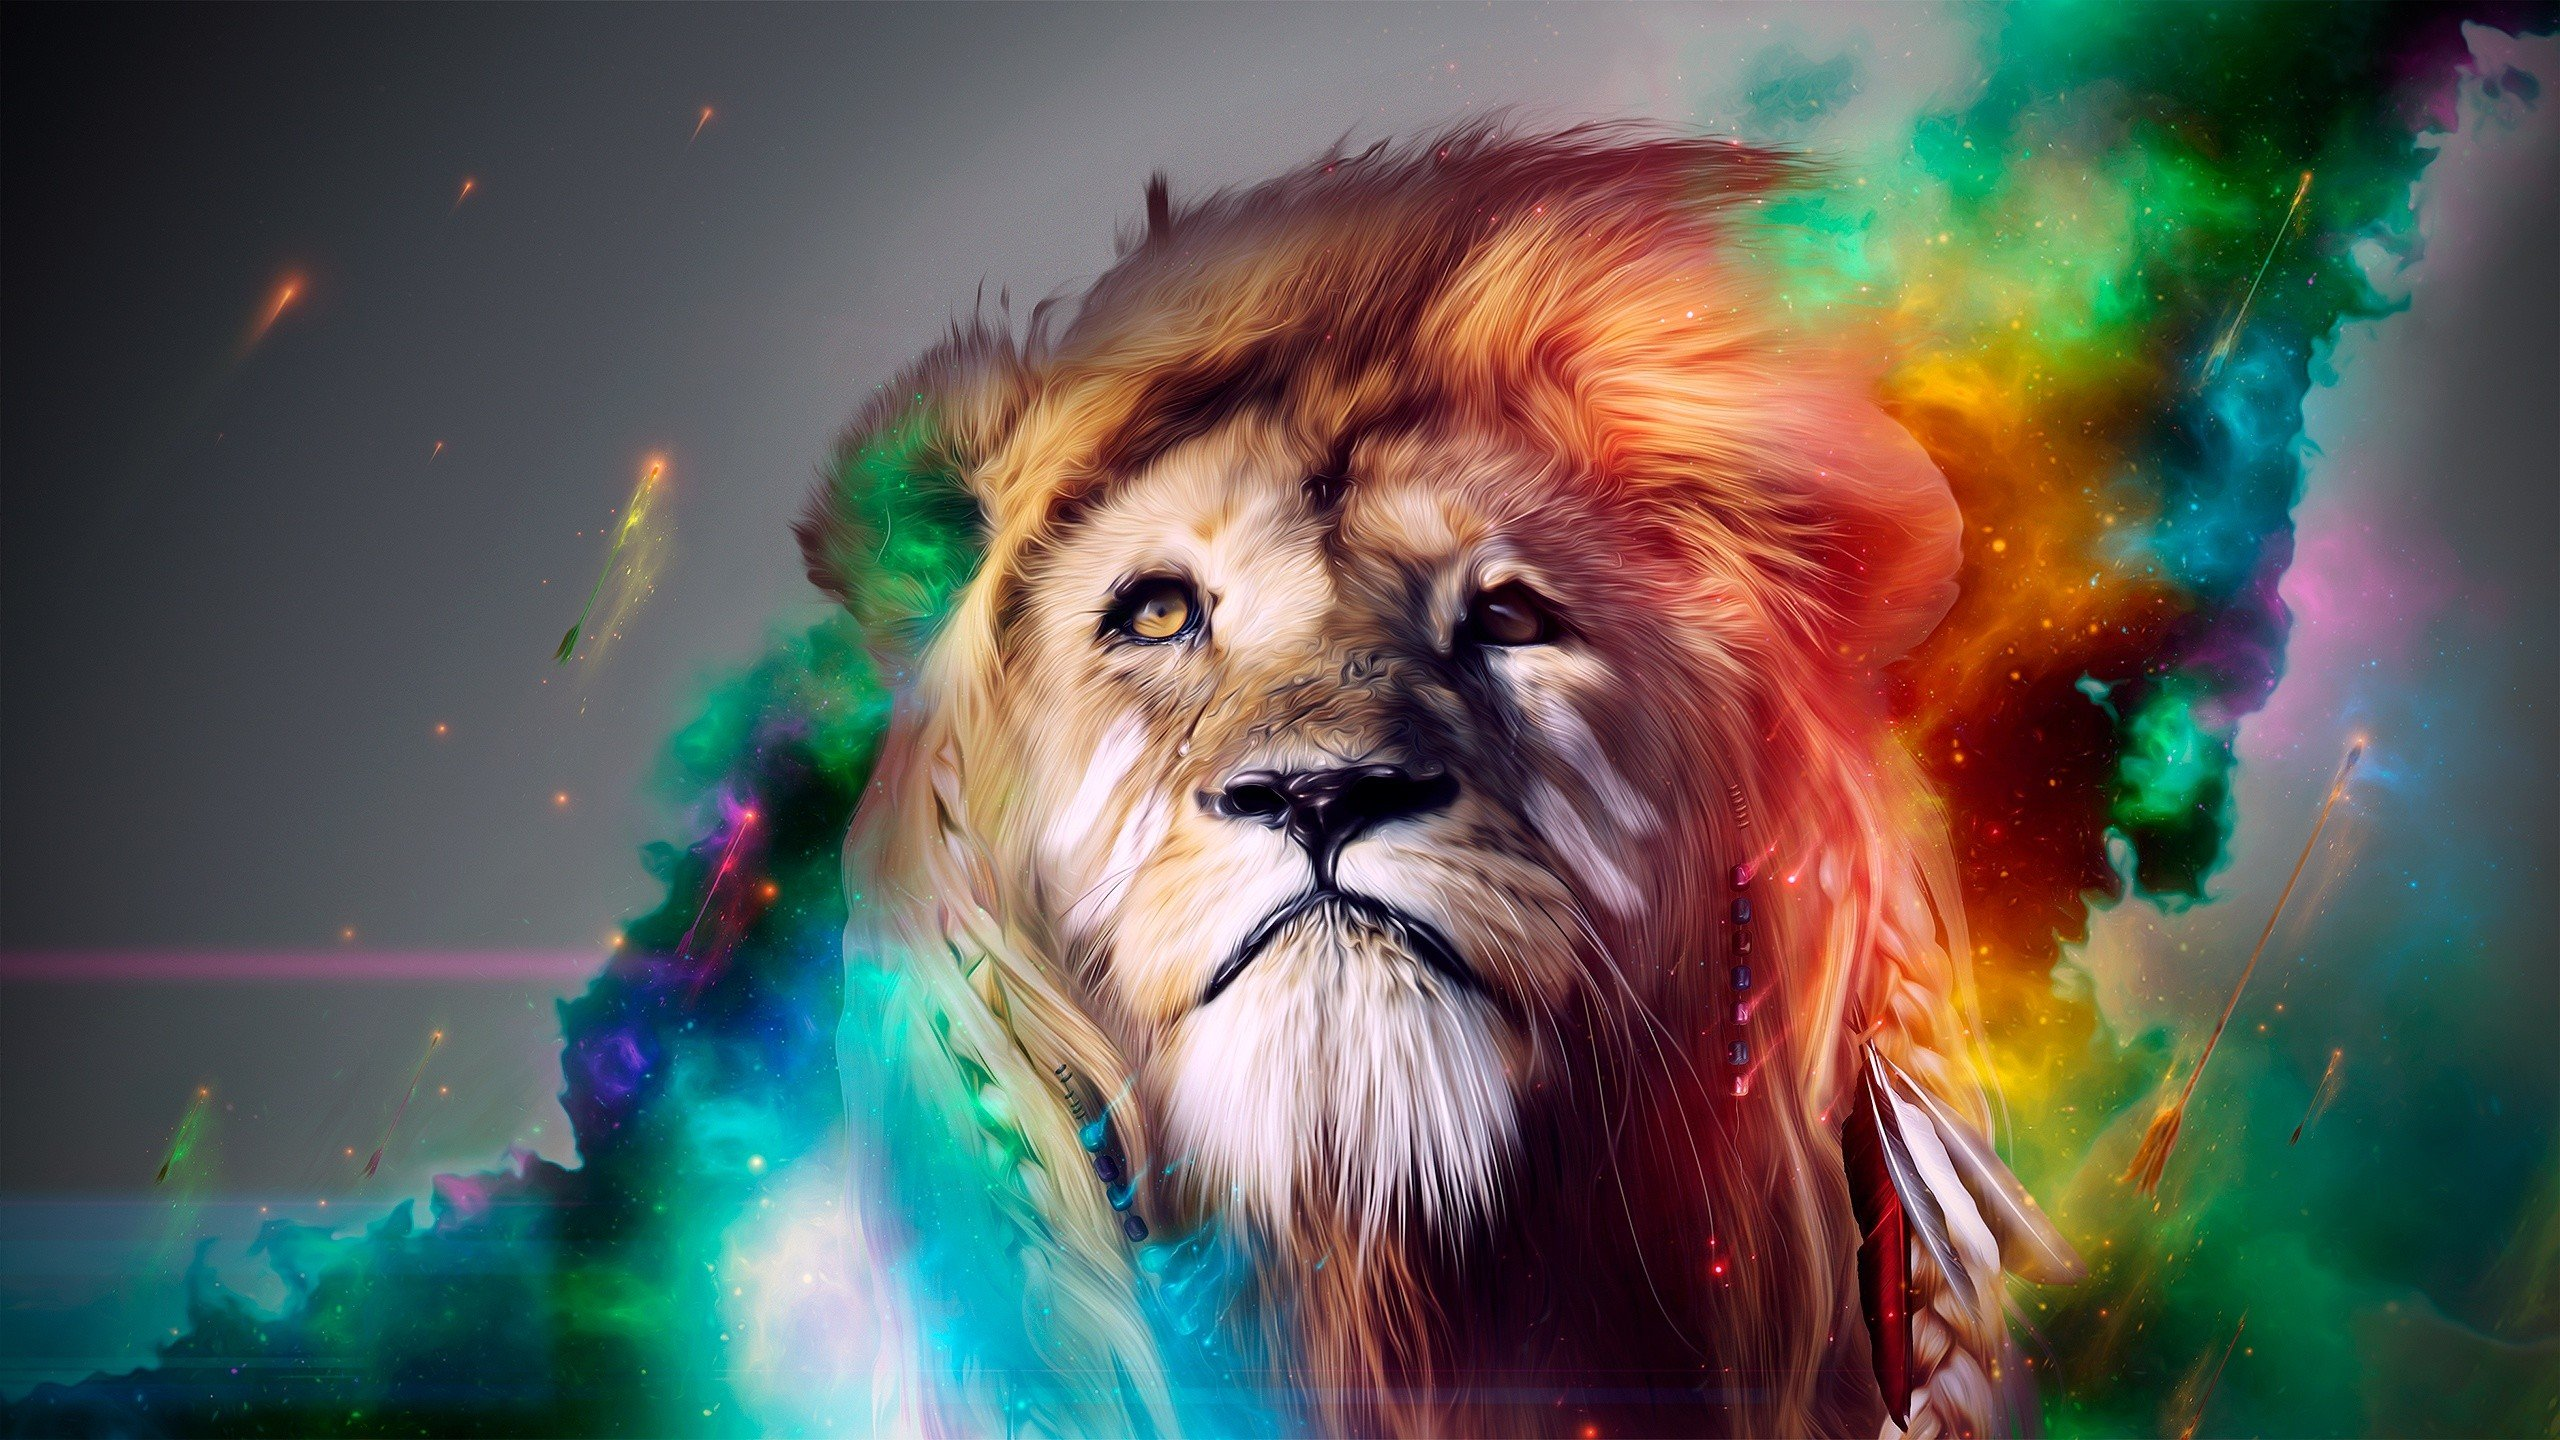 High resolution Lion hd 2560x1440 background ID:255155 for desktop